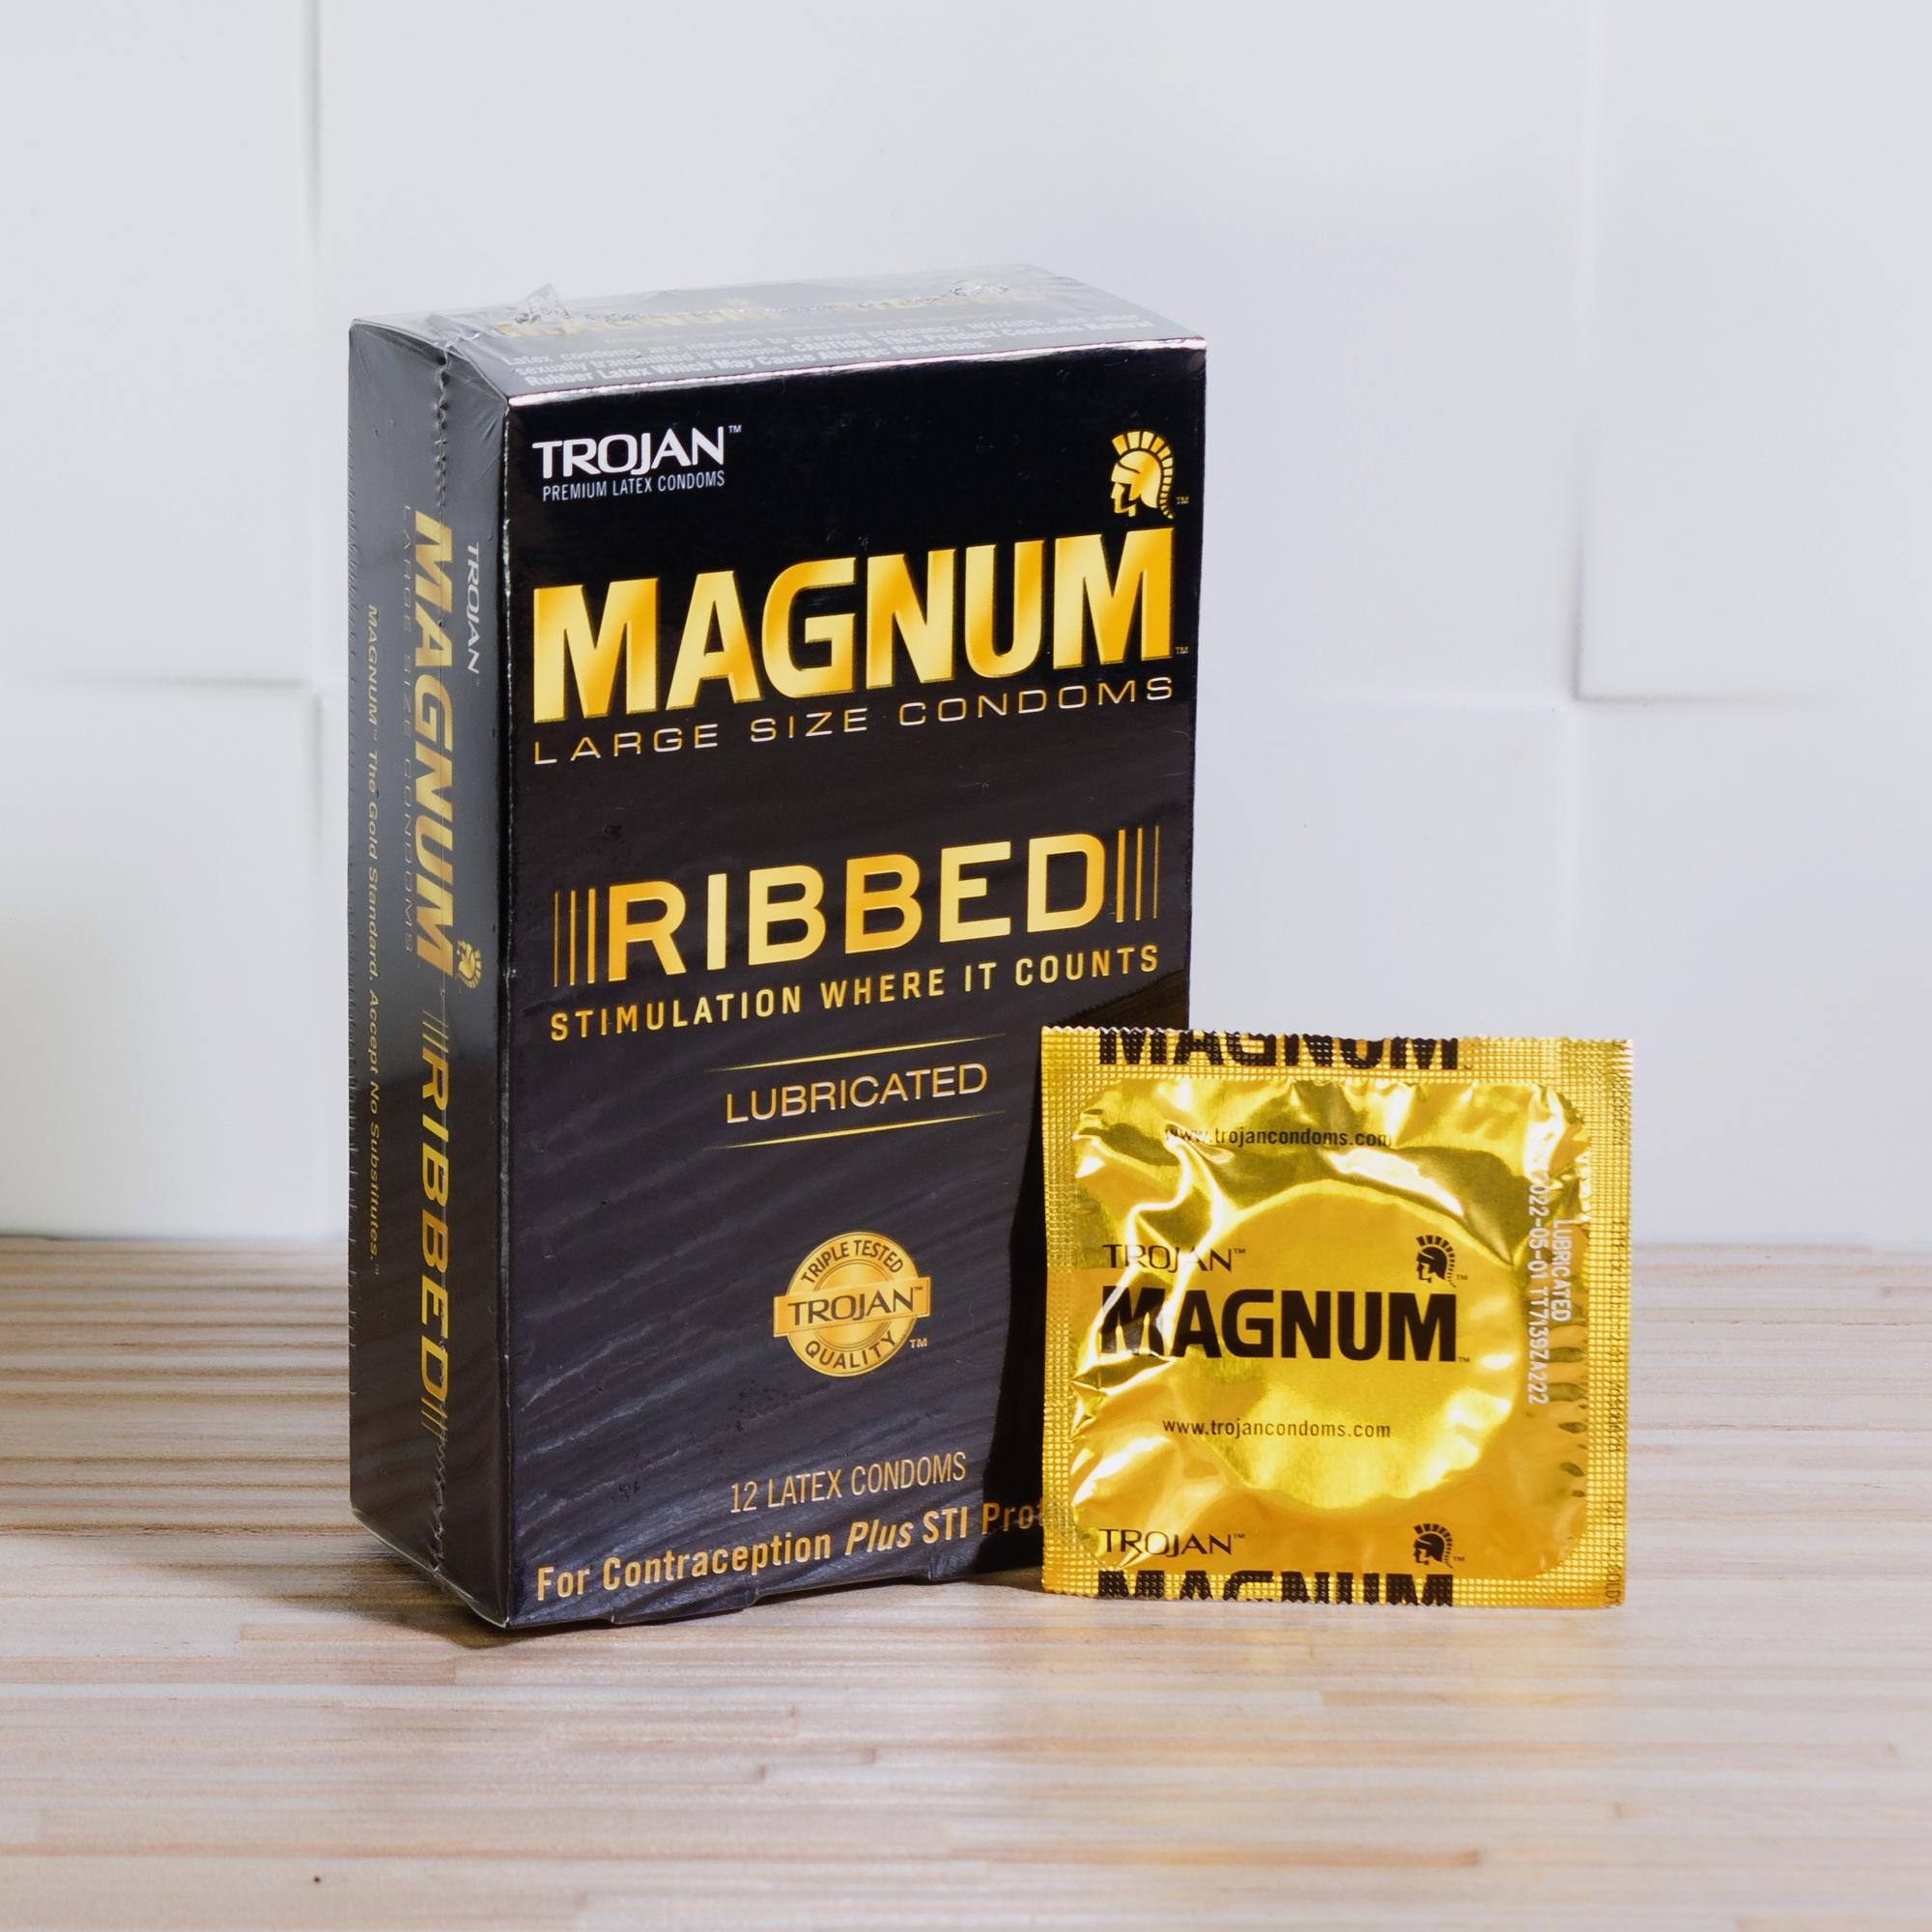 Trojan Magnum Ribbed Condom Large Size Lubricated 12 pieces